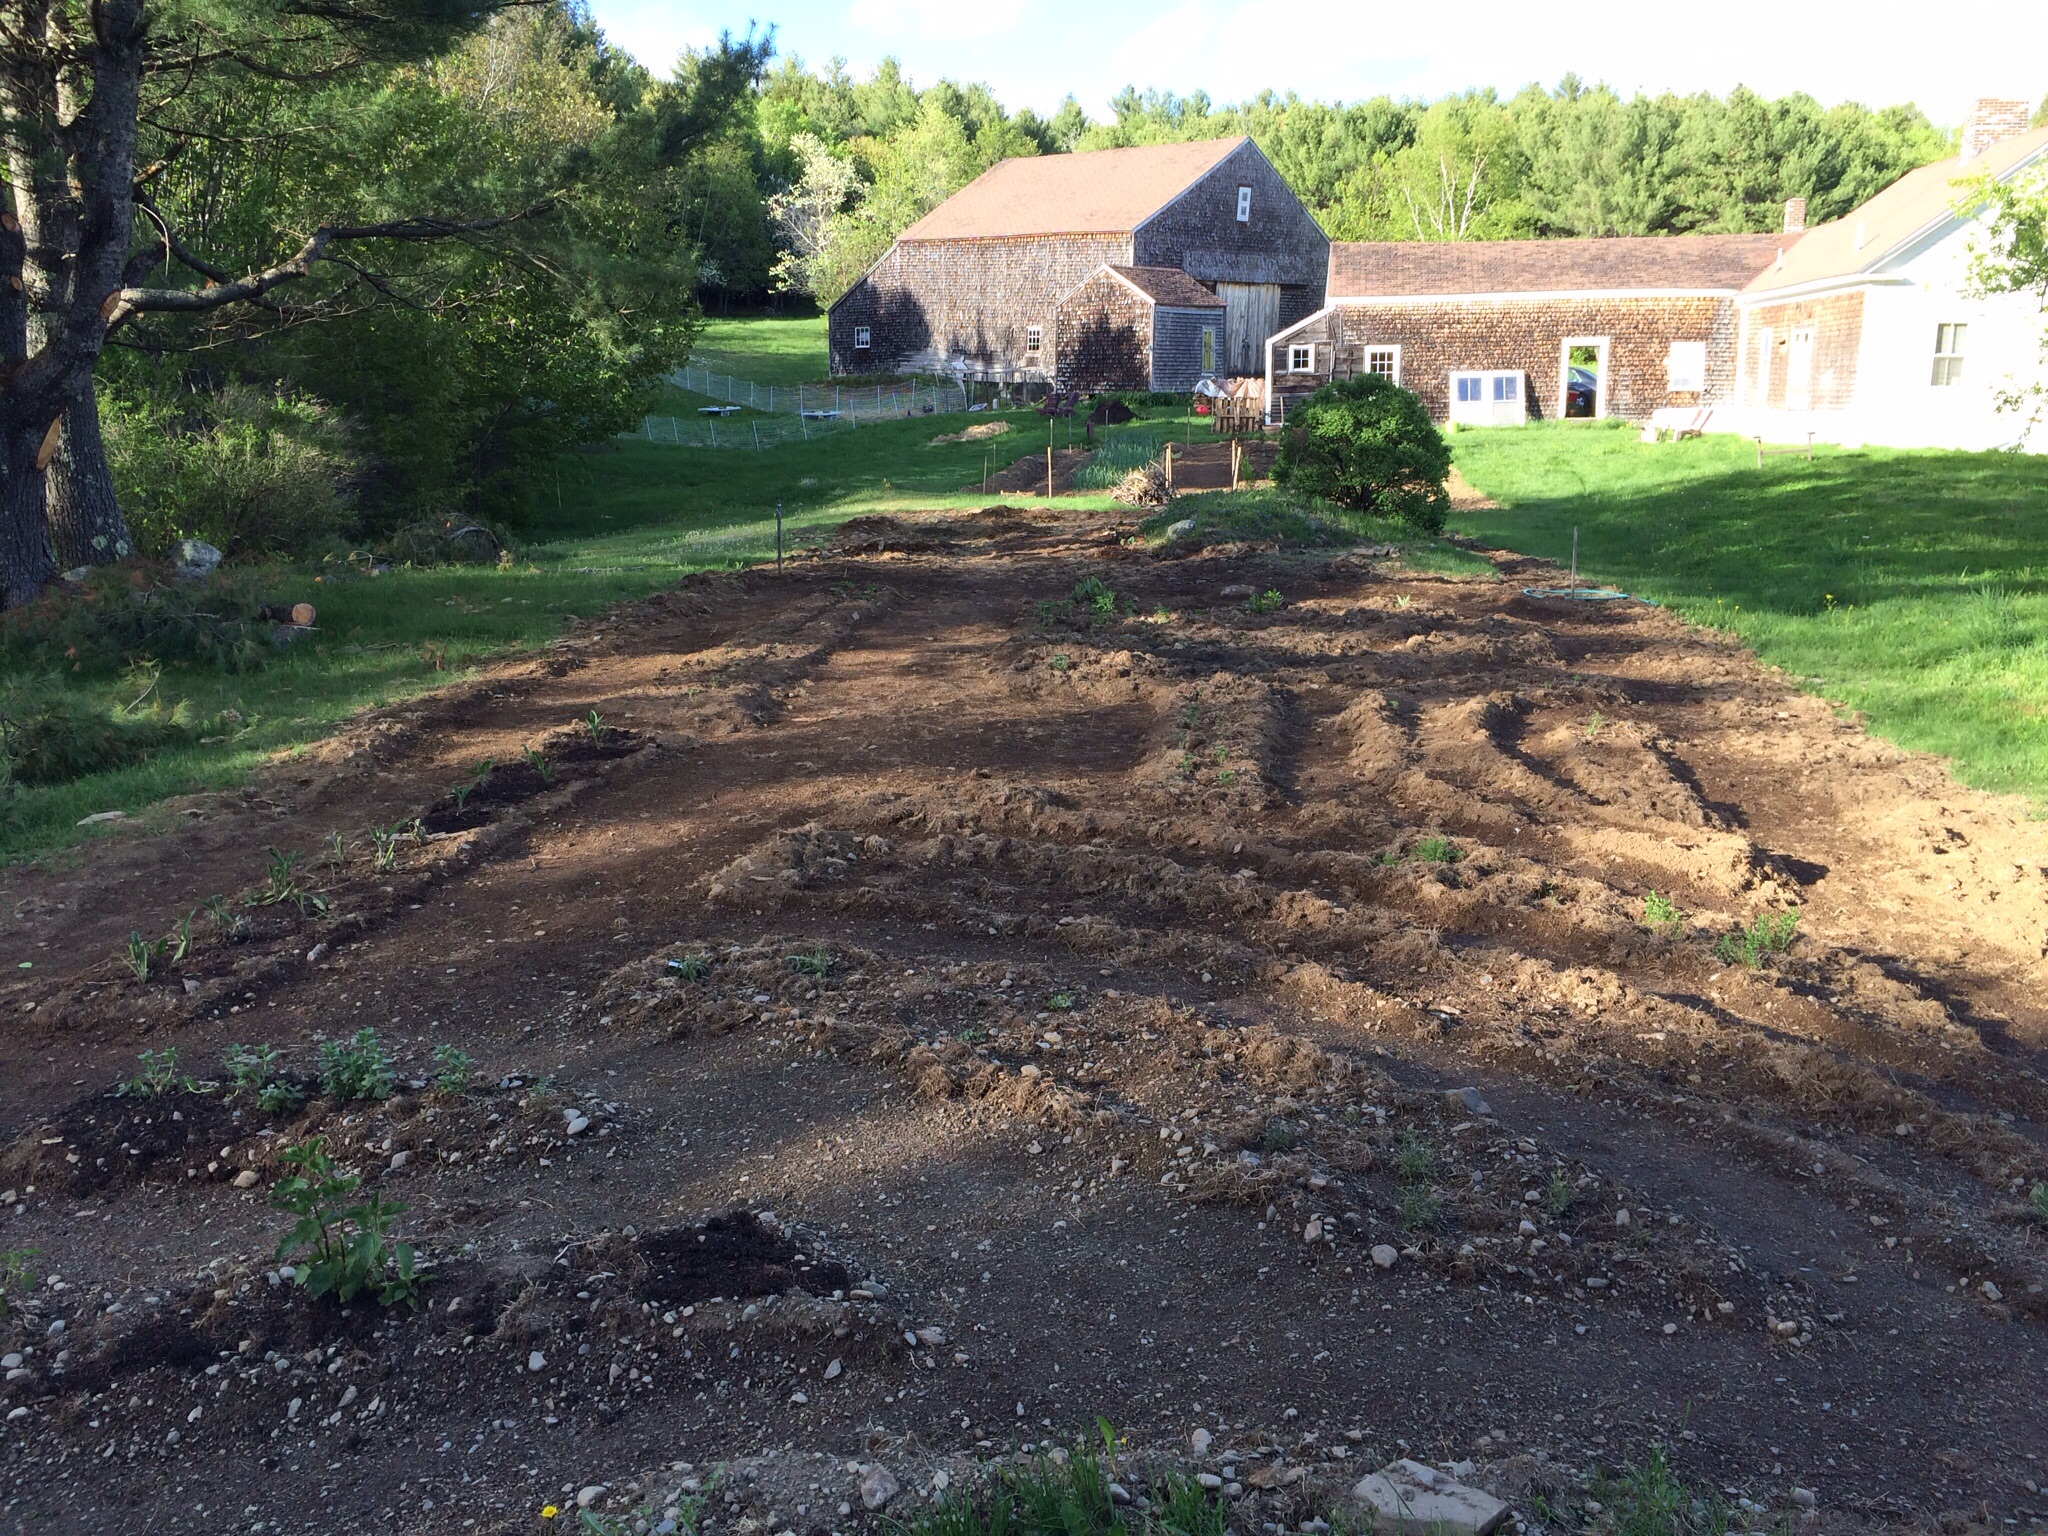 It may be difficult to make out in the picturebut the medicinal herb garden beds are laid out in a fancifulpattern bothto make harvesting easy and to allow for some meditative herb walks once everything has grown in.